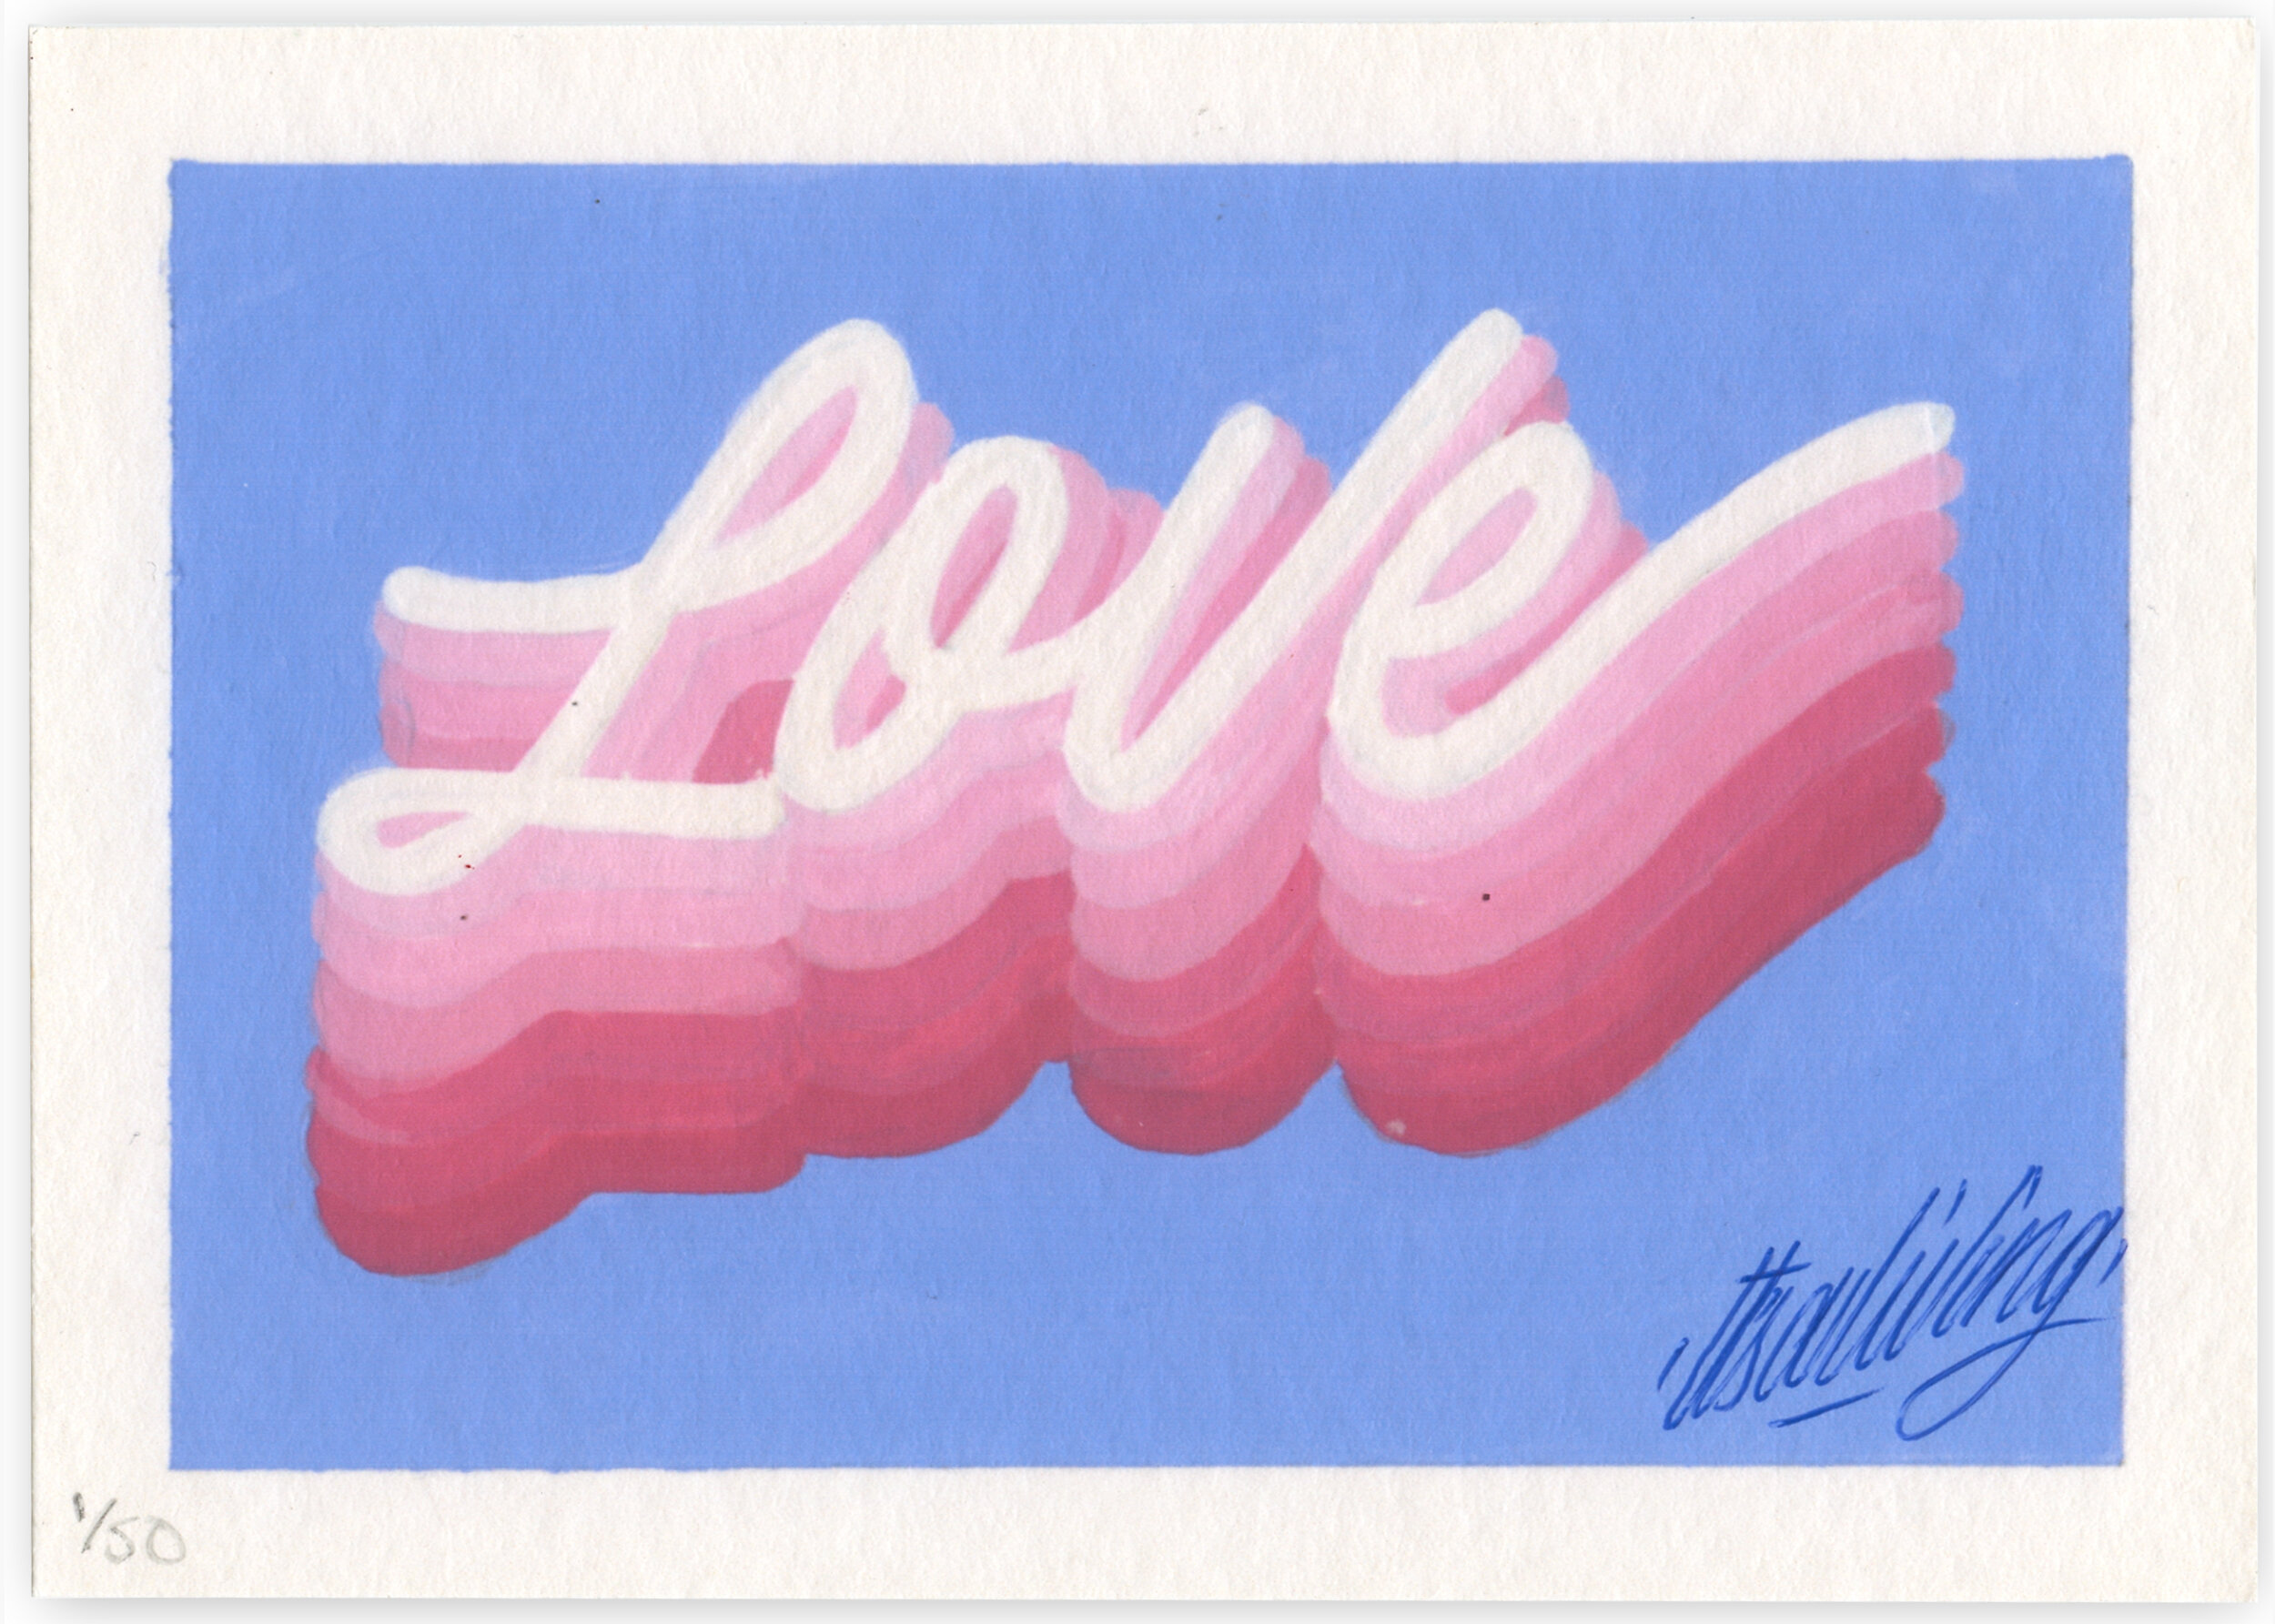 LOVE  by It's A Living    Fine Art Giclée print on Hahnemühle Bamboo    Limited Edition of 50